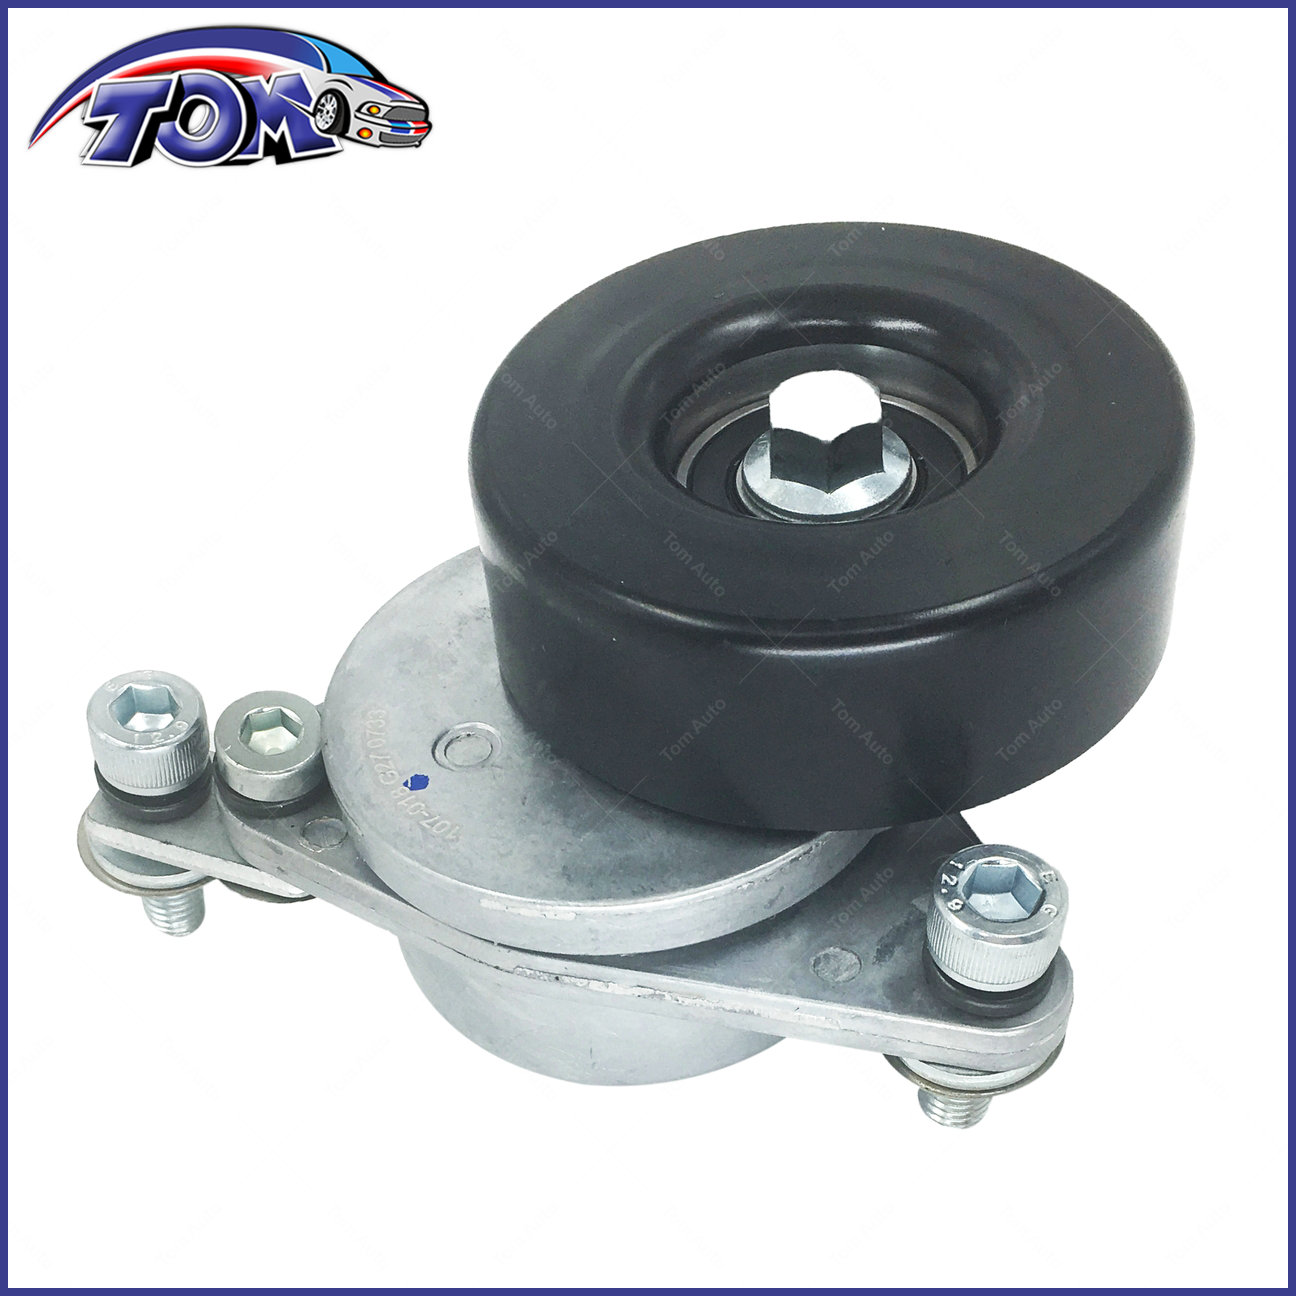 hight resolution of details about new gm 10237275 replacement drive belt tensioner 7 4l 454 w smog pump